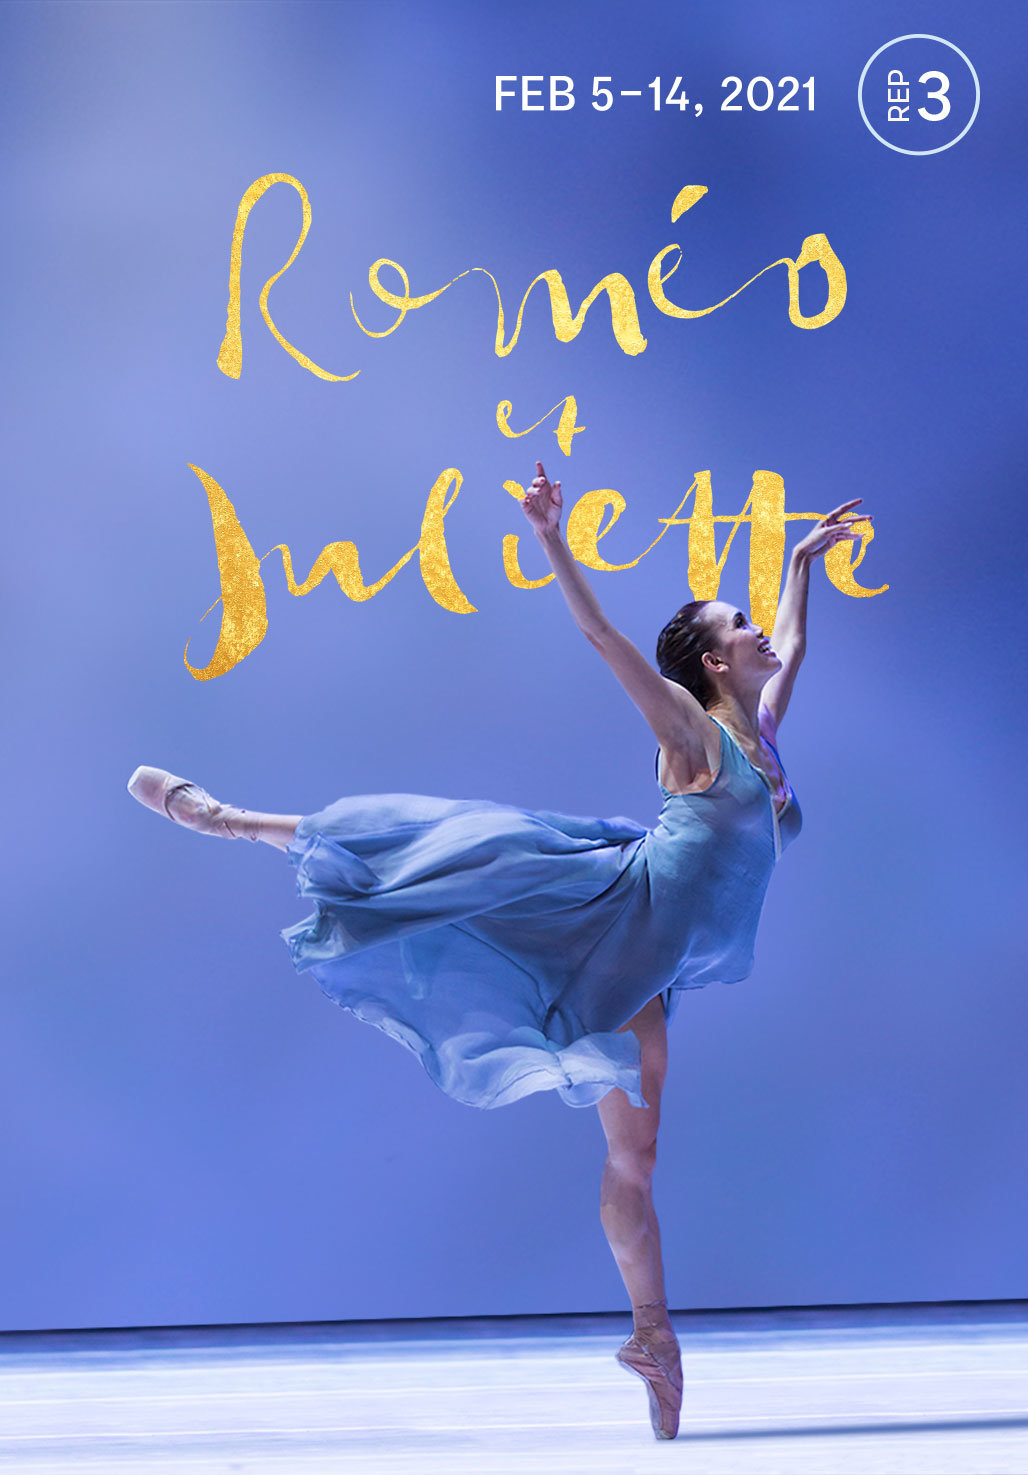 Romeo et Juliette. February 5 - 14, 2021 at Pacific Northwest Ballet. Jean-Christophe Maillot infuses Shakespeare's classic Romeo and Juliet with intoxicating emotion and beauty. Rediscover the fragility and volatility of youth in this cinematic tale of first love.